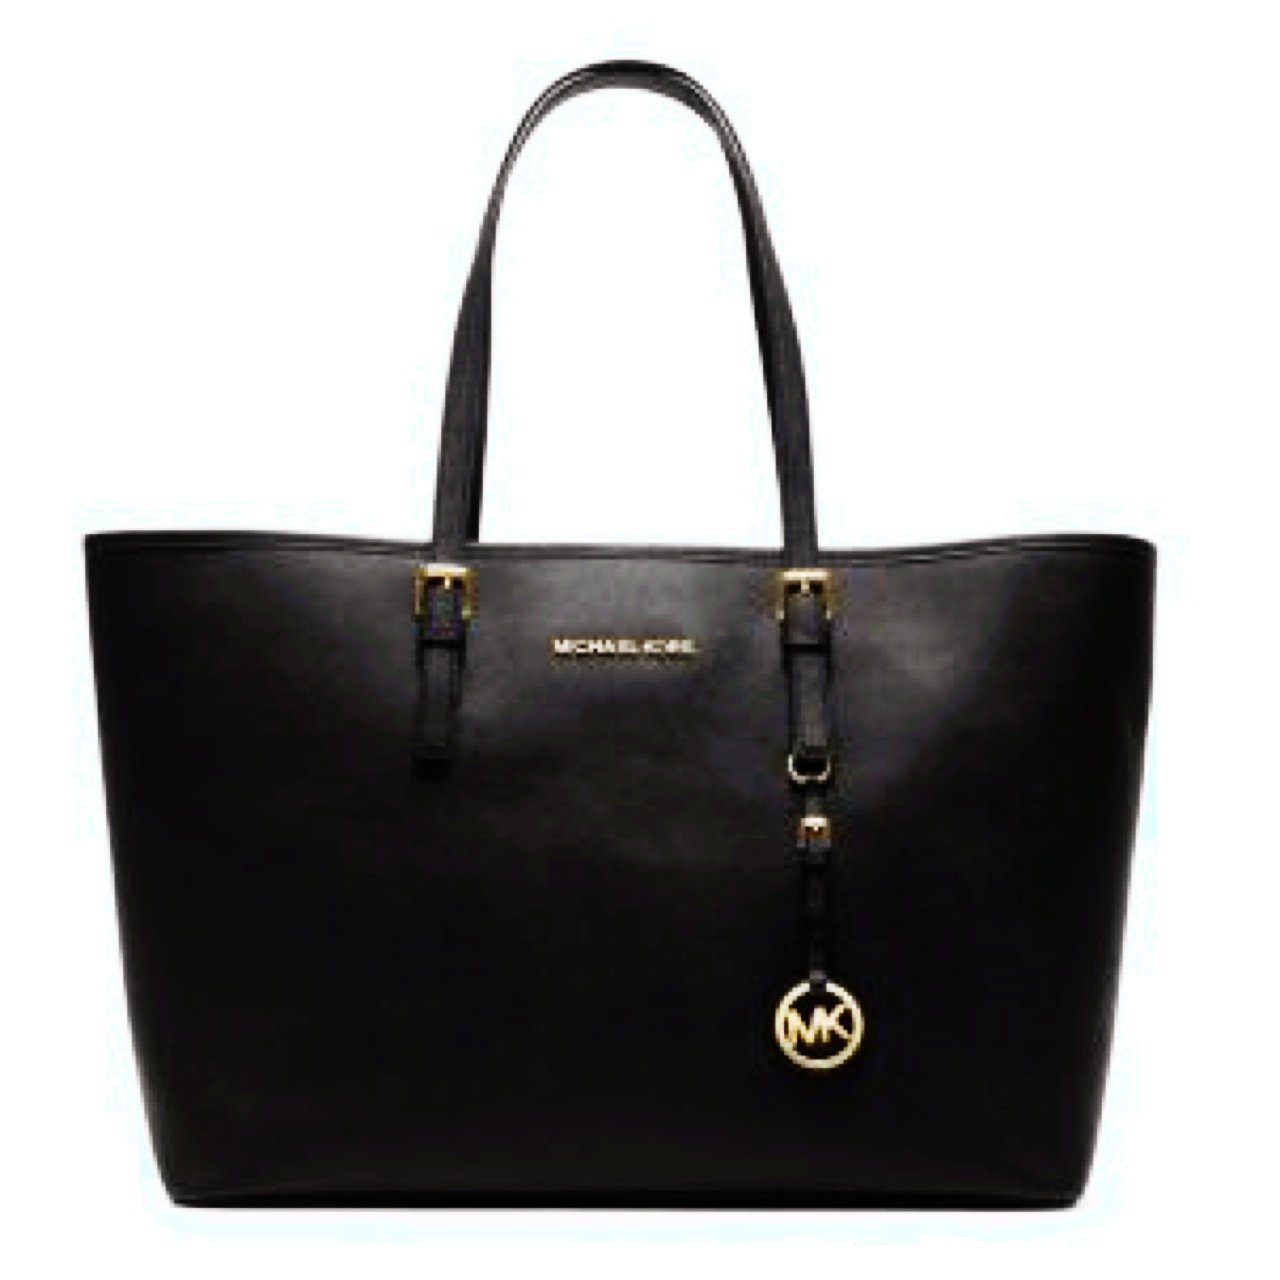 50d962df08a5 @eimearwoulfe. 3 years ago. Ireland. Michael Kors Large Black Jet Set  Travel Tote.